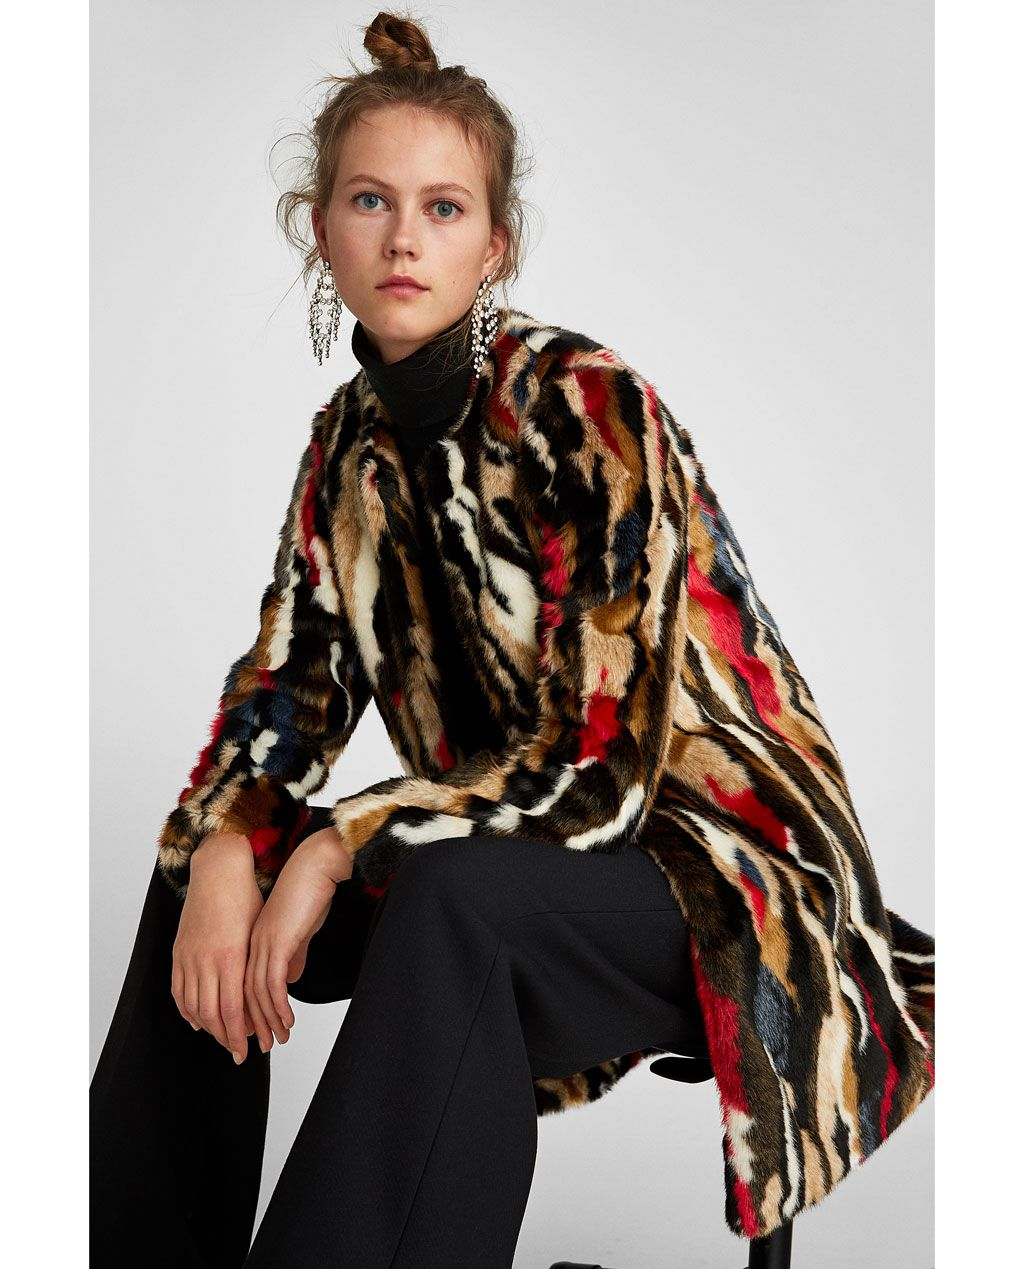 MULTICOLOURED FAUX FUR COAT-View all-OUTERWEAR-WOMAN | ZARA United States